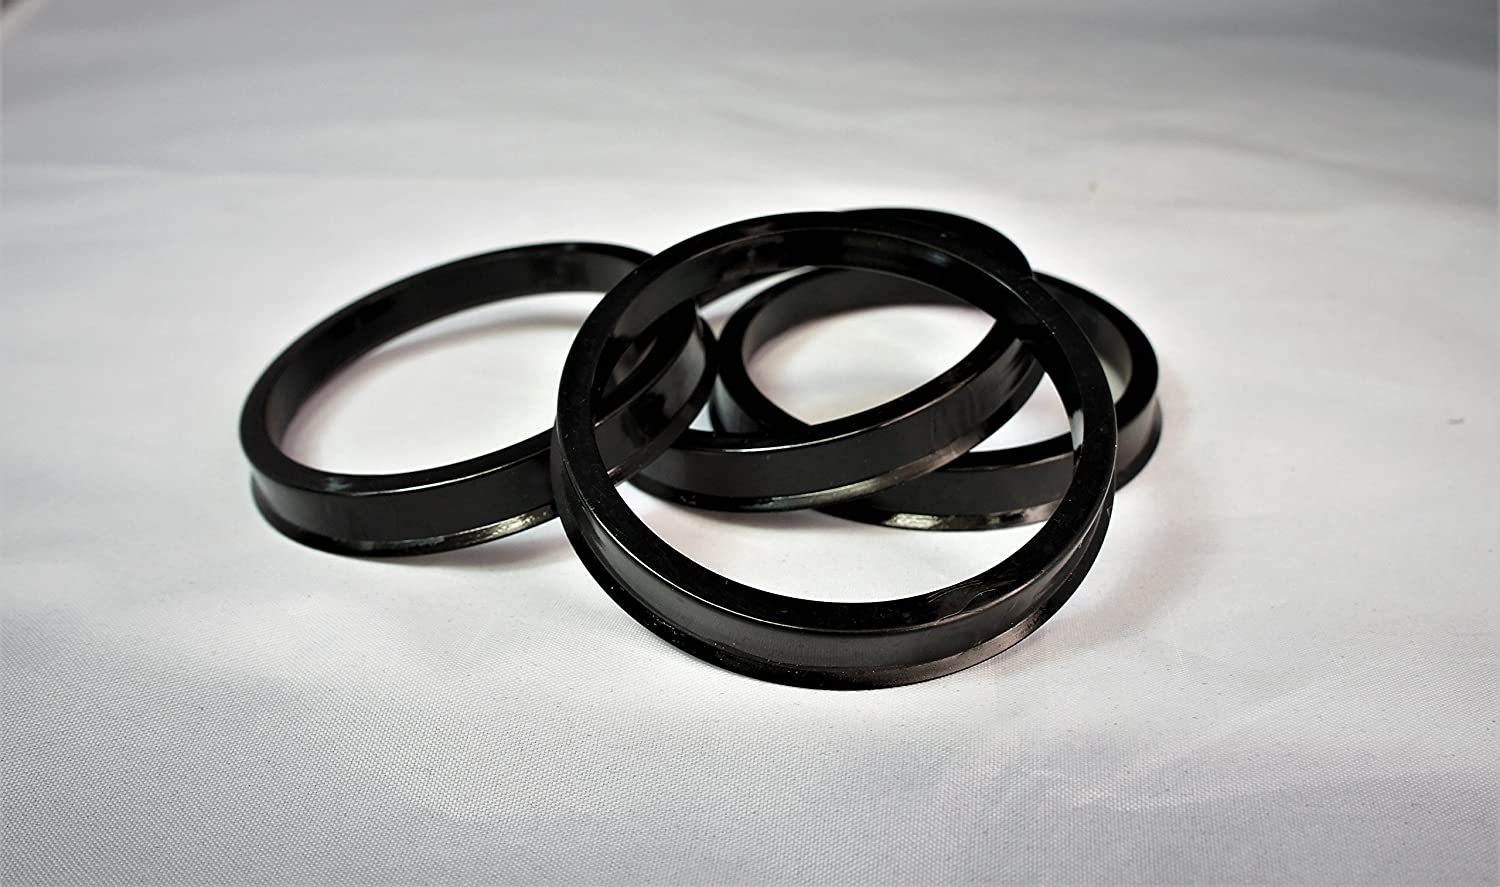 Customadeonly 4 Pieces Polycarbonate Hub Centric Rings 87.1mm Wheel Bore to 78.1mm Factory Hub